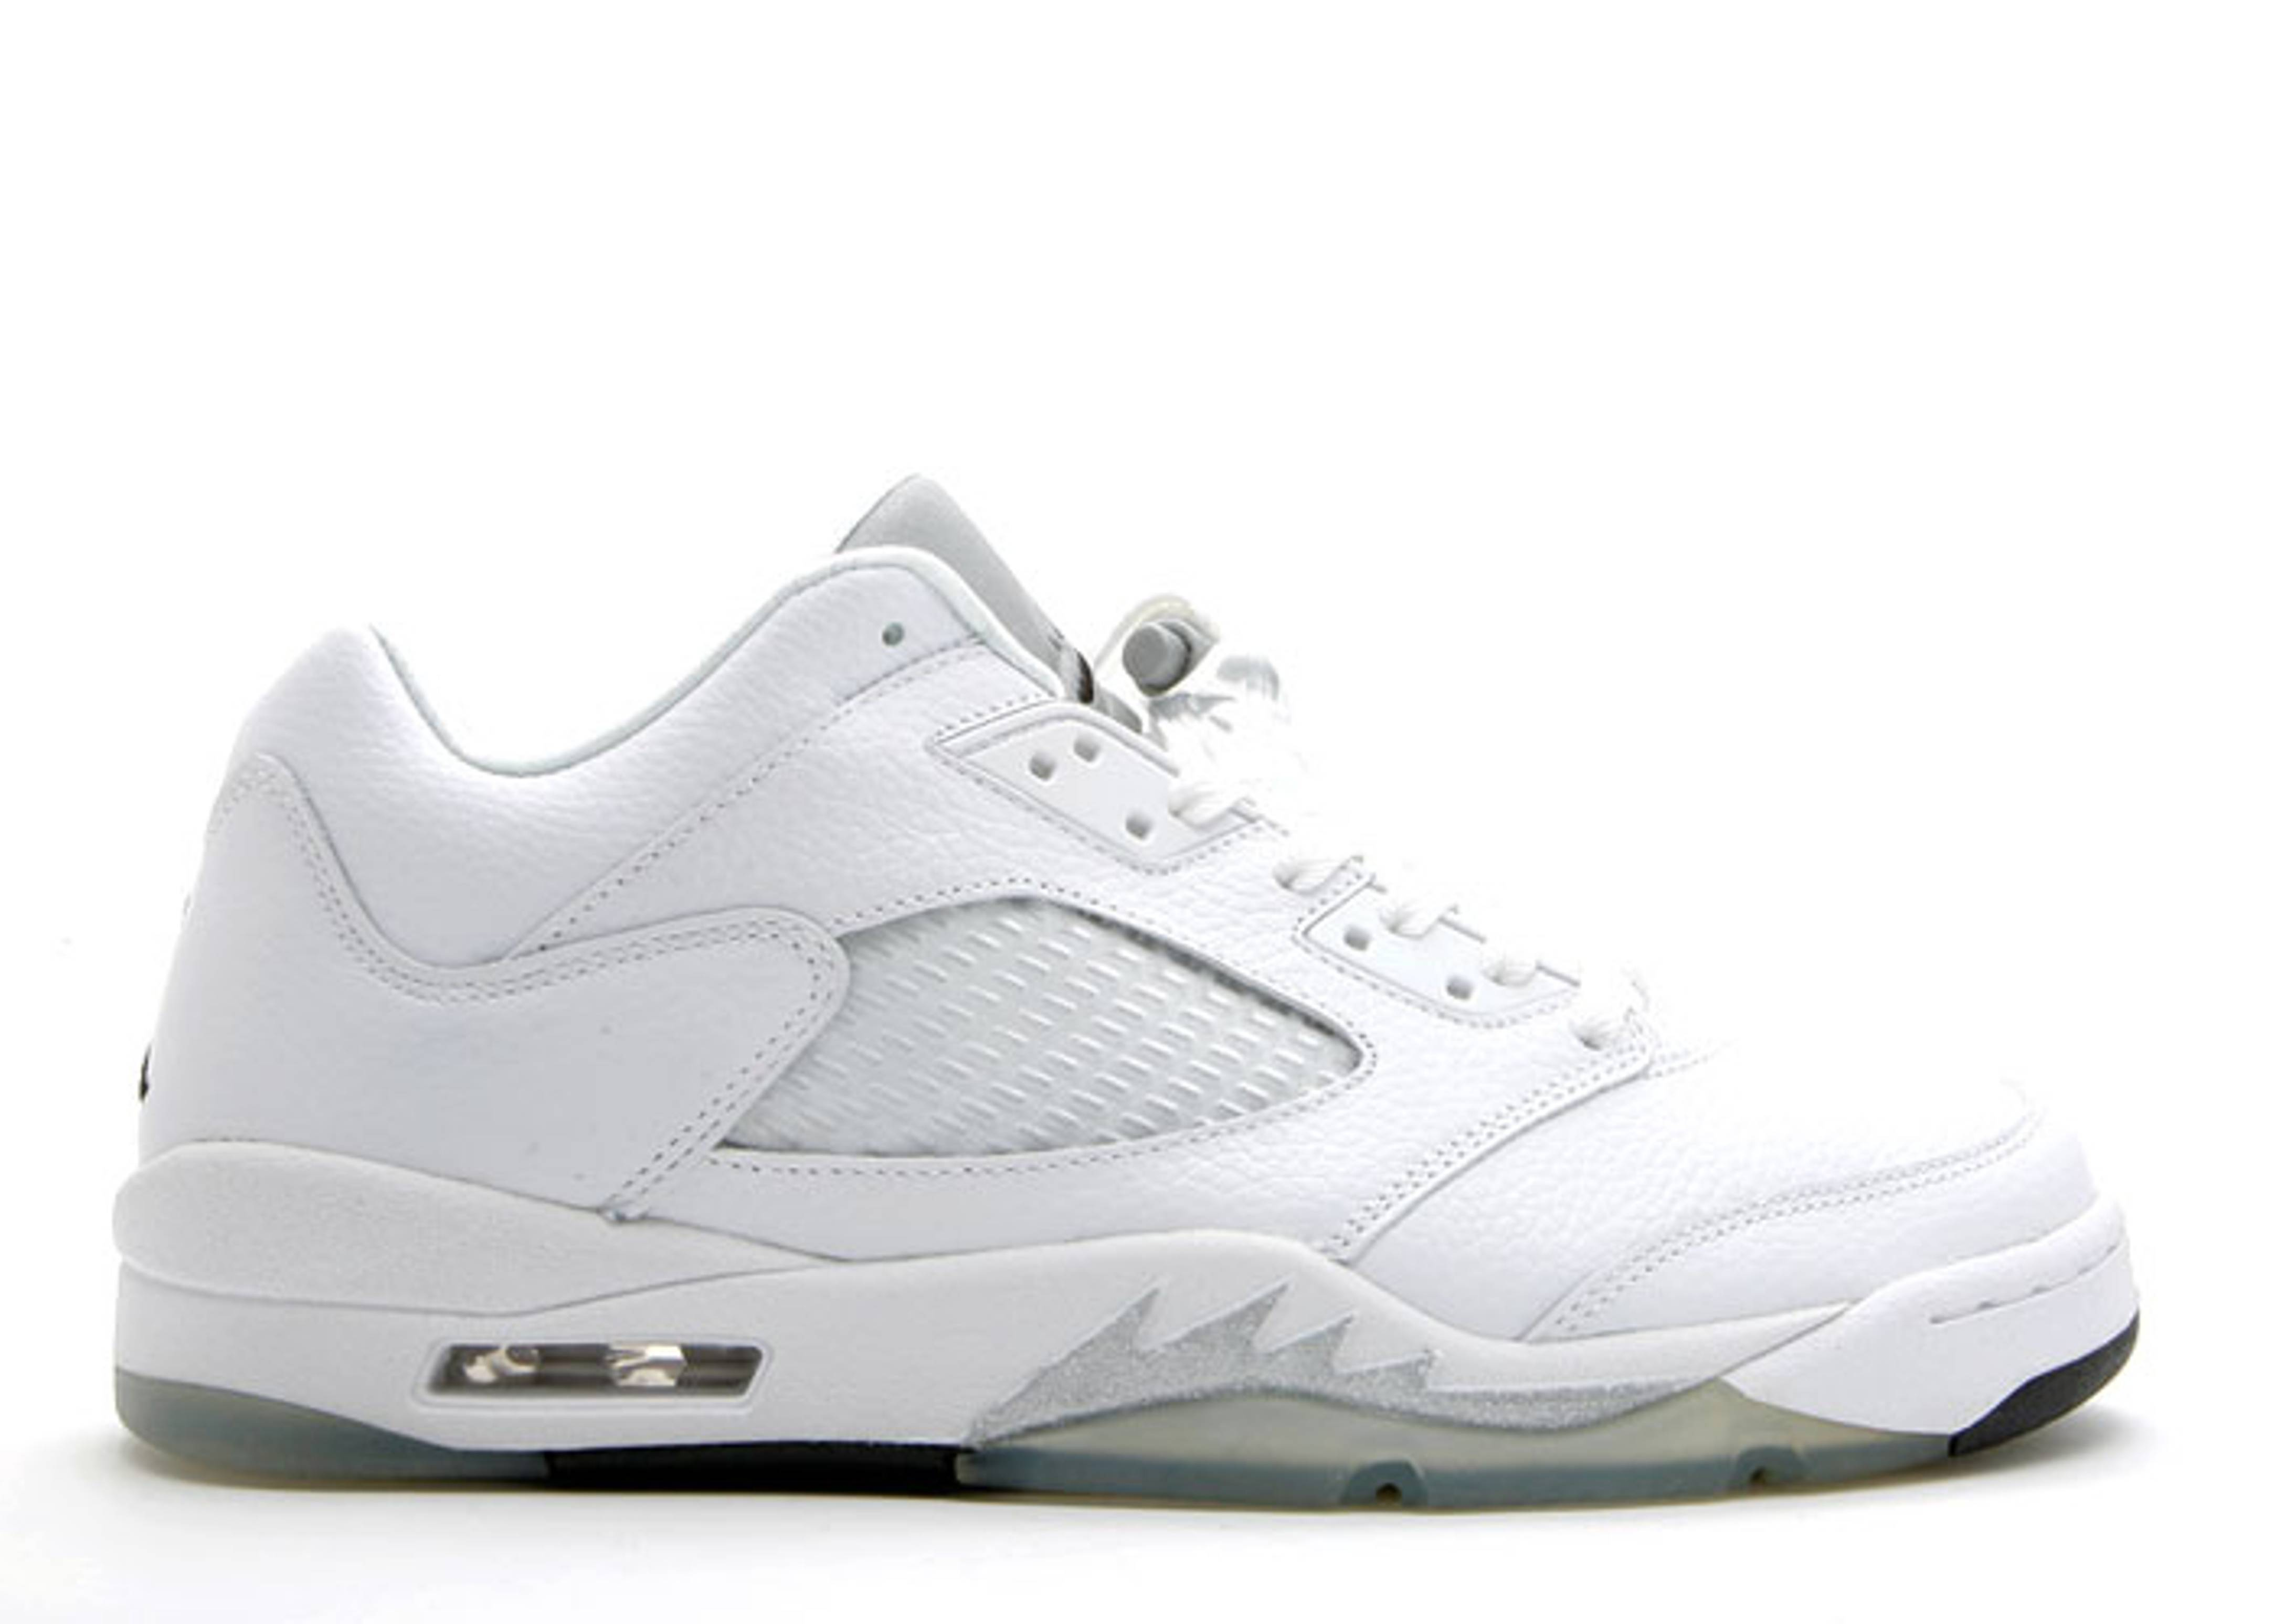 w's air jordan 5 retro low